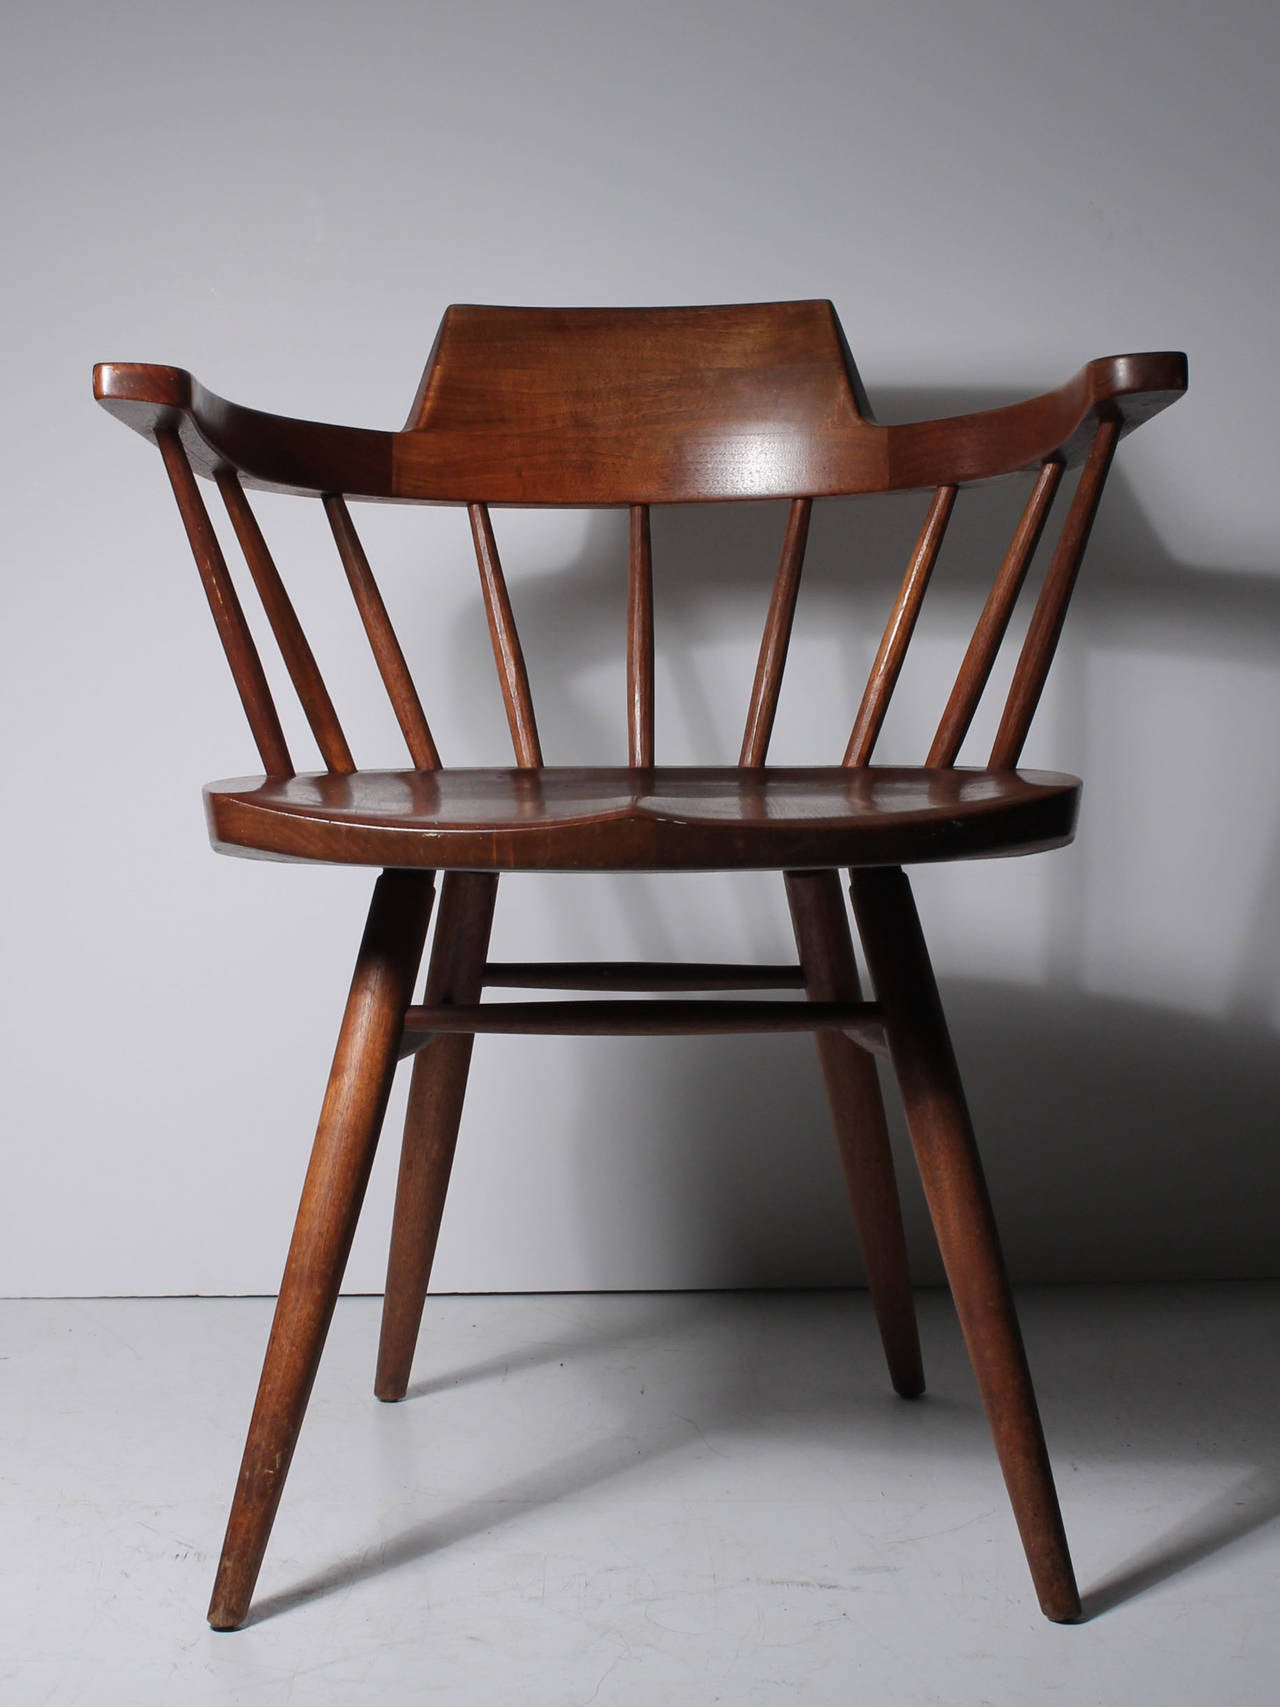 captains chair kneeling posture benefits pair of studio nakashima chairs 4 available for